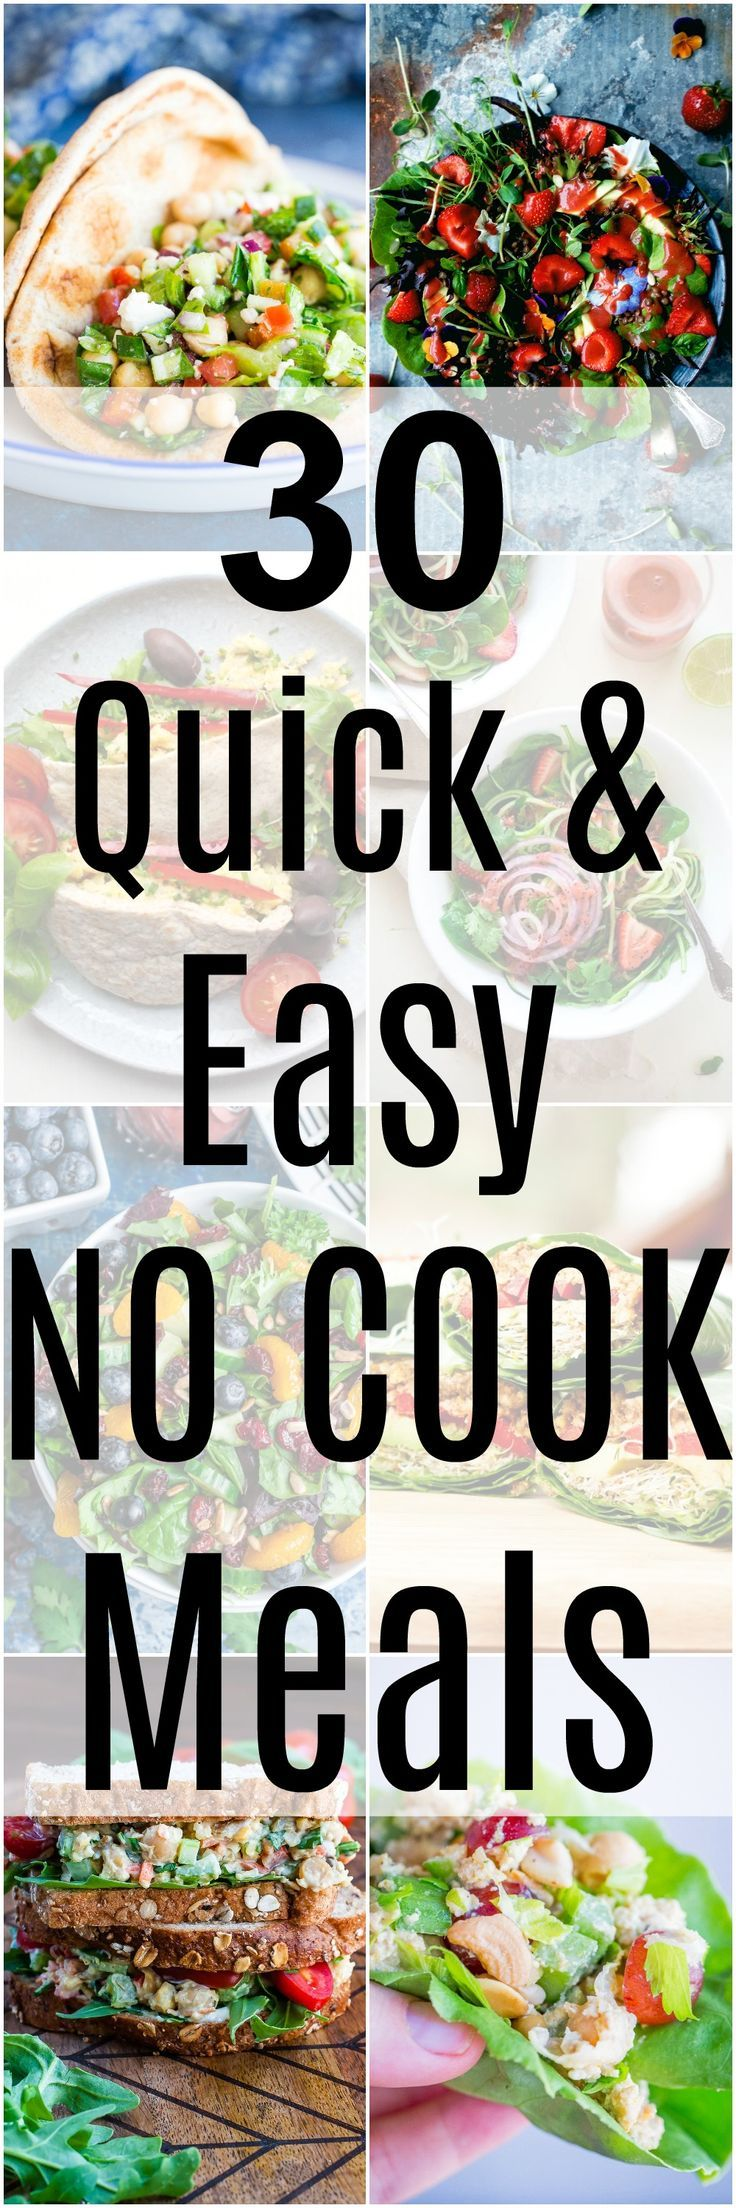 30 Quick and Easy No Cook Meals - Tons of delicious options for when you don't want to cook this summer!  Vegetarian, lots of vegan and gluten free options